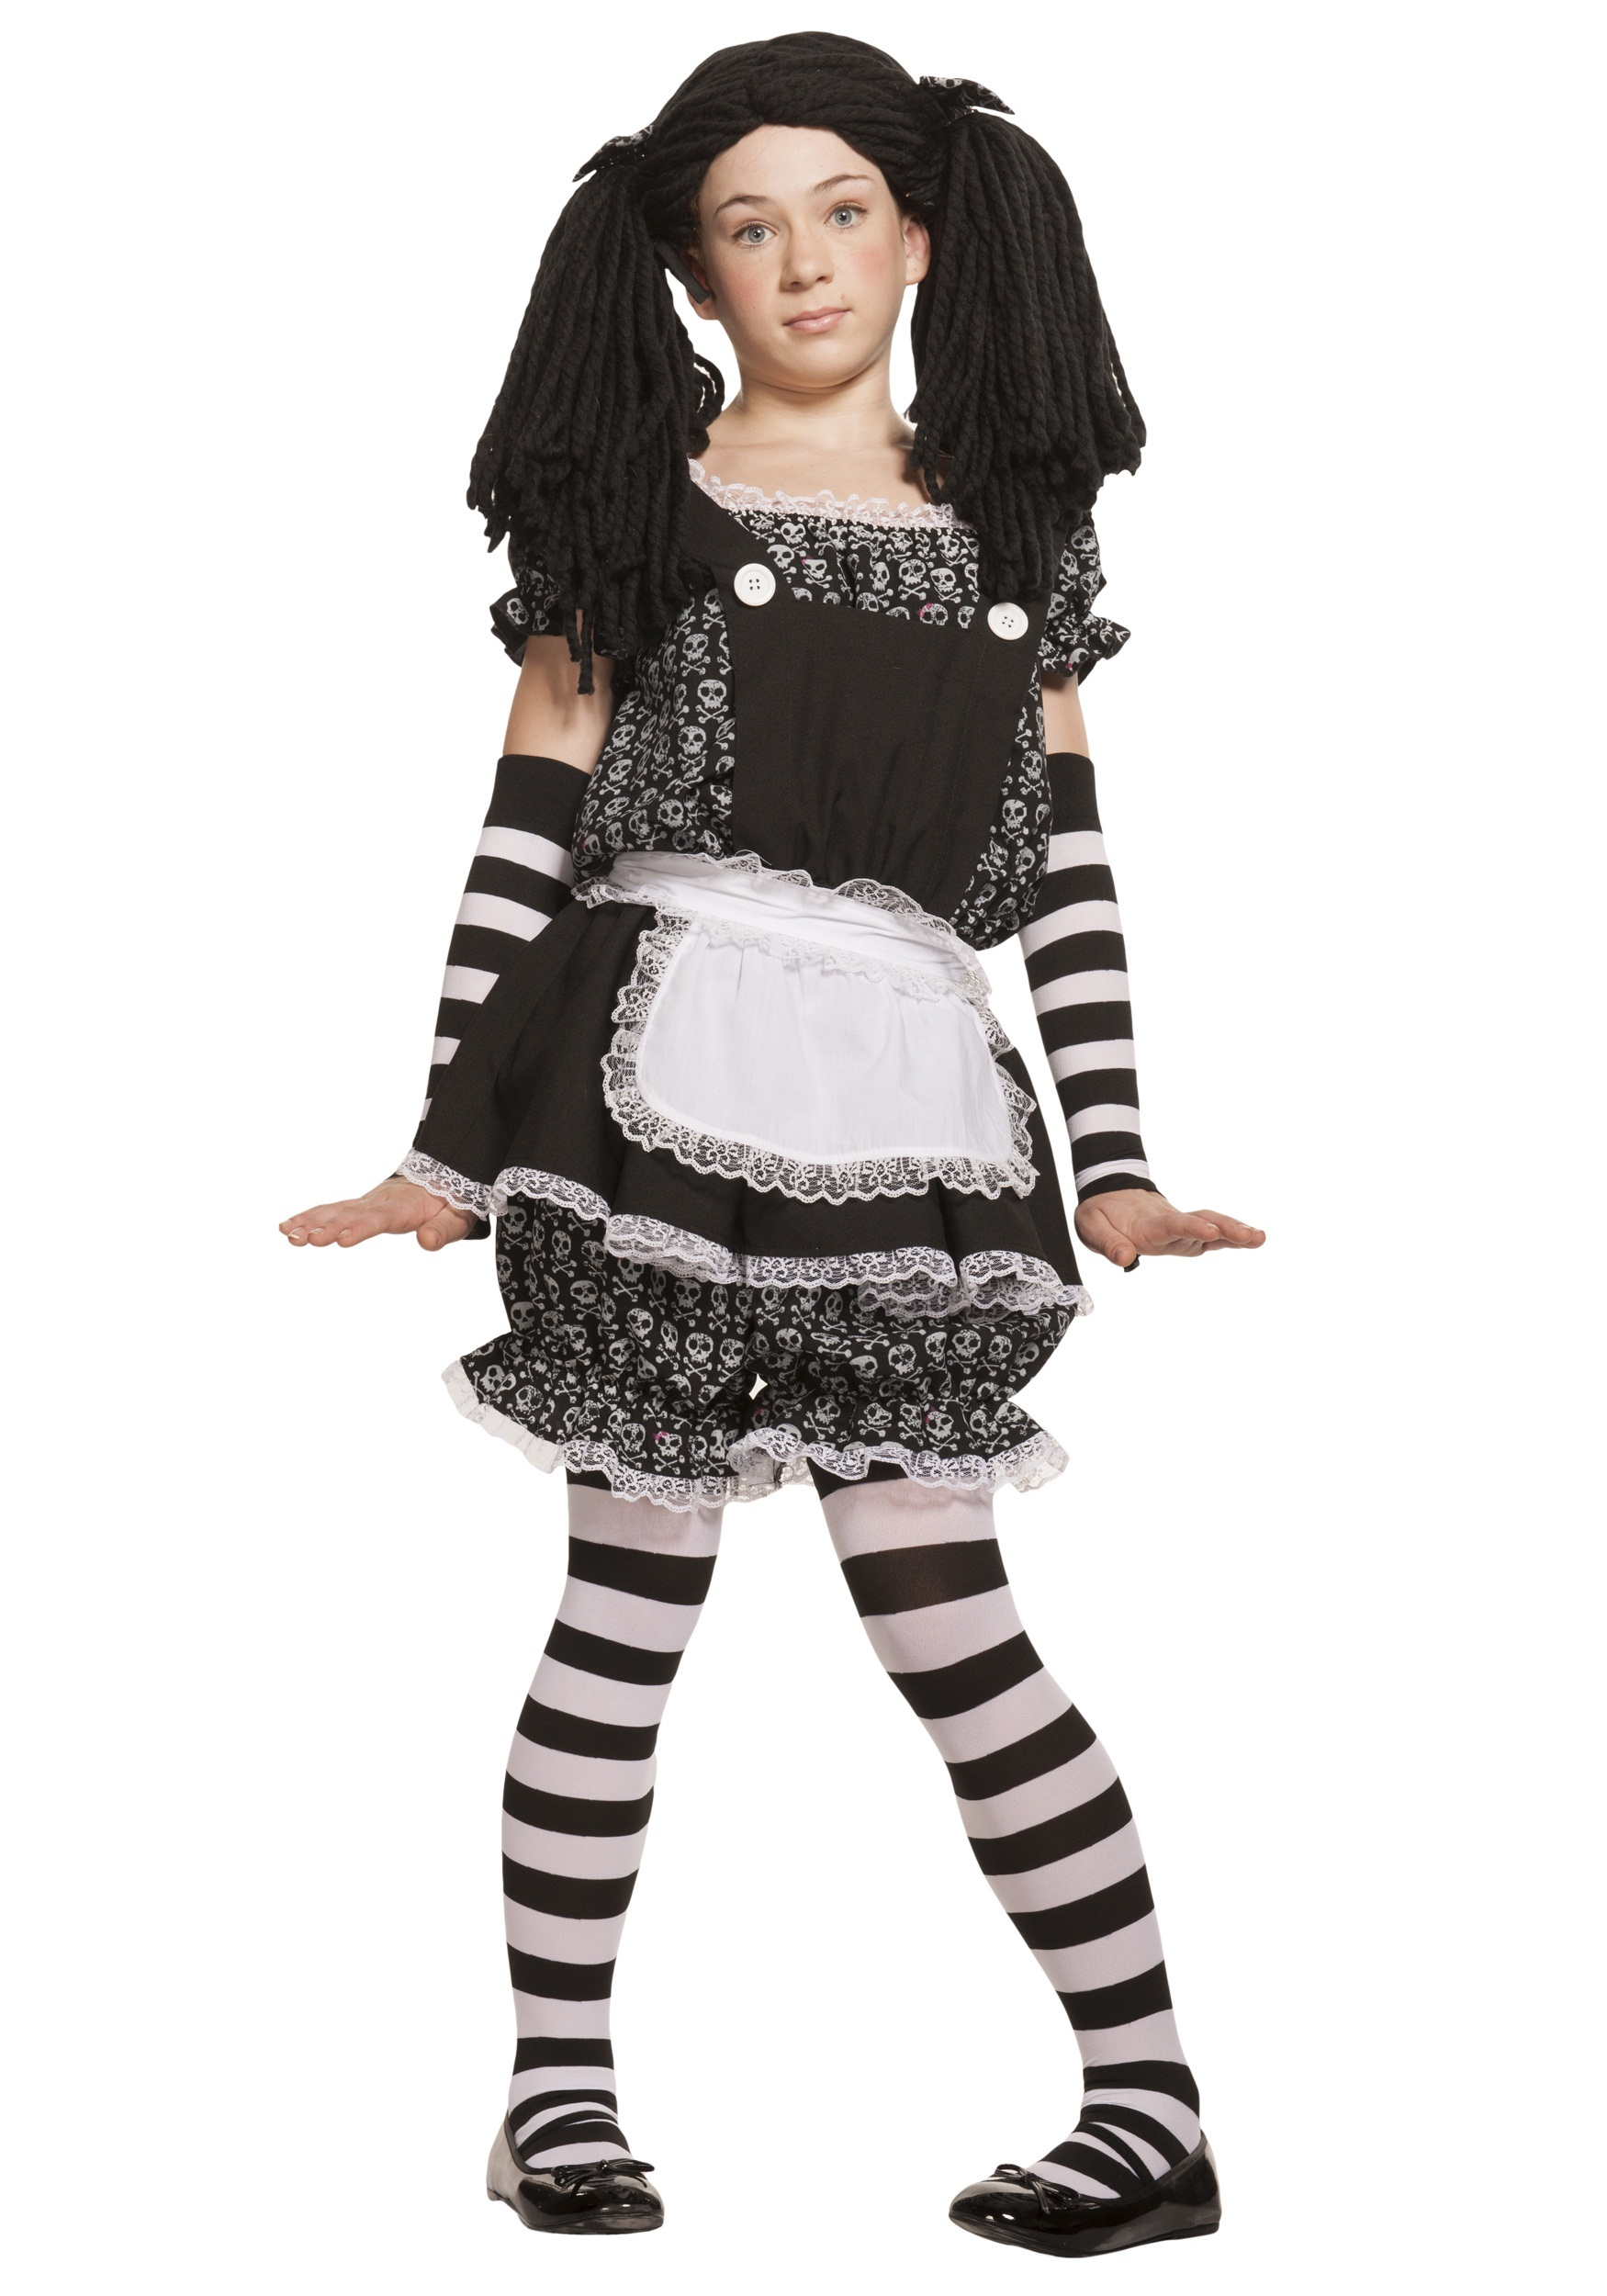 Teen Gothic Dolly Costume Halloween Costume Ideas 2019